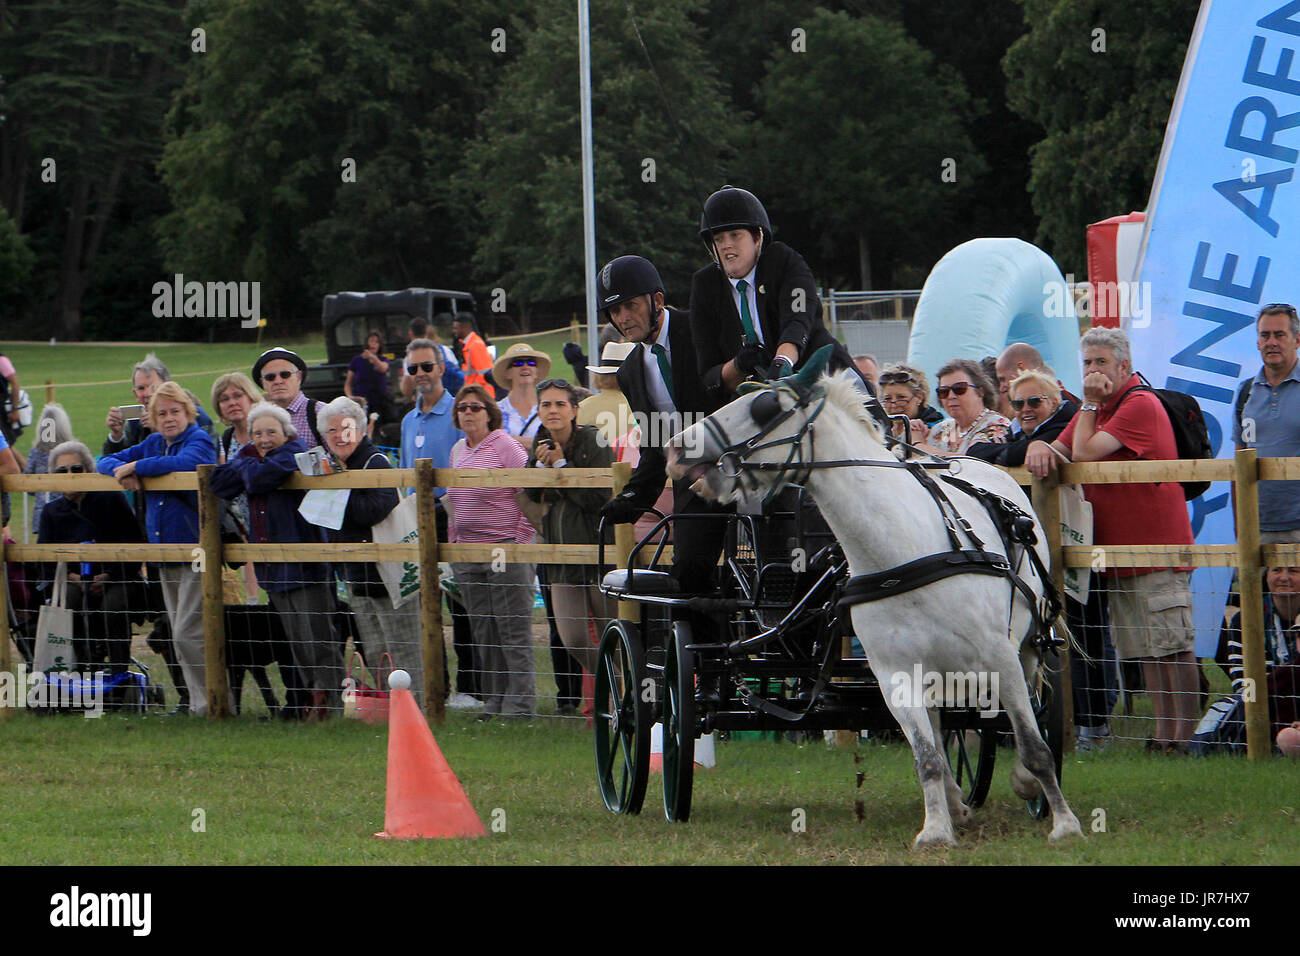 Blenheim Palace, Woodstock, UK. 4th Aug, 2017. Lucy Foster drives A touch of Frost through the carriage driving course on the second day of Countryfile Live at Blenheim Palace Picture: Ric Mellis 4/8/2017 Credit: Ric Mellis/Alamy Live News - Stock Image